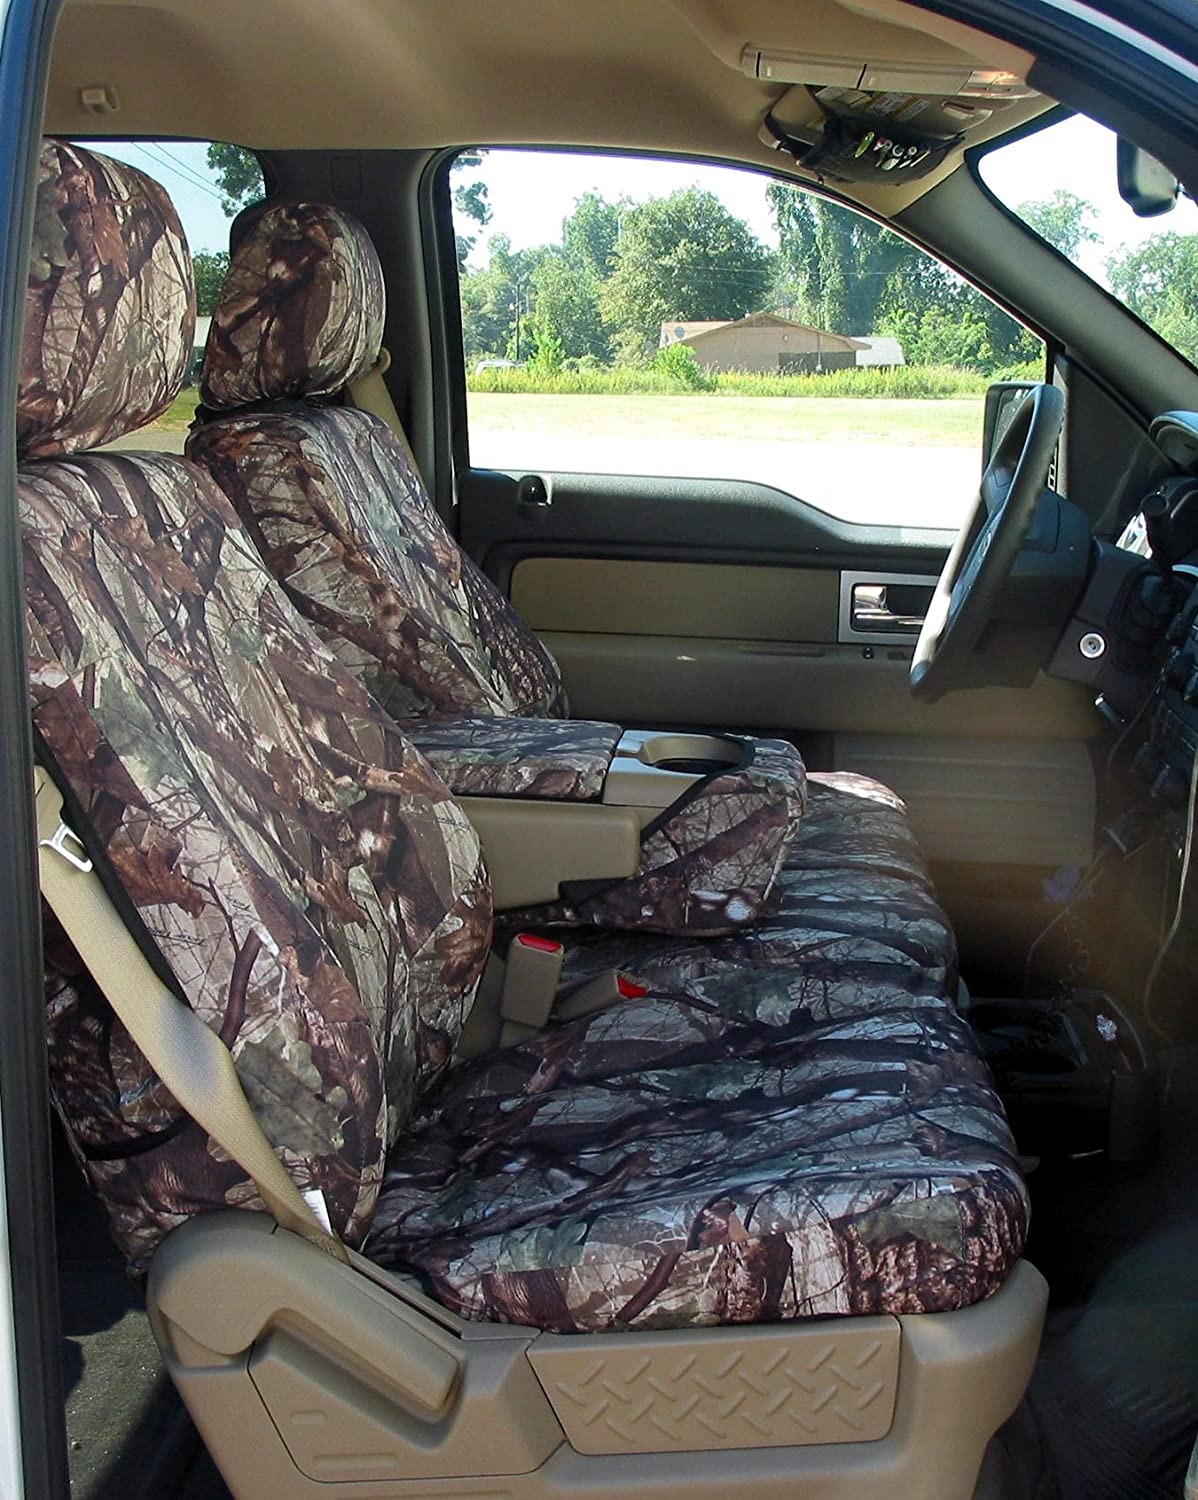 Fabulous Exact Seat Covers Fd49 Ds1 E 2010 Ford F150 Xlt Super Crew Front And Back Seat Set Custom Exact Fit Seat Covers Ds1 Camo Waterproof Endura Squirreltailoven Fun Painted Chair Ideas Images Squirreltailovenorg